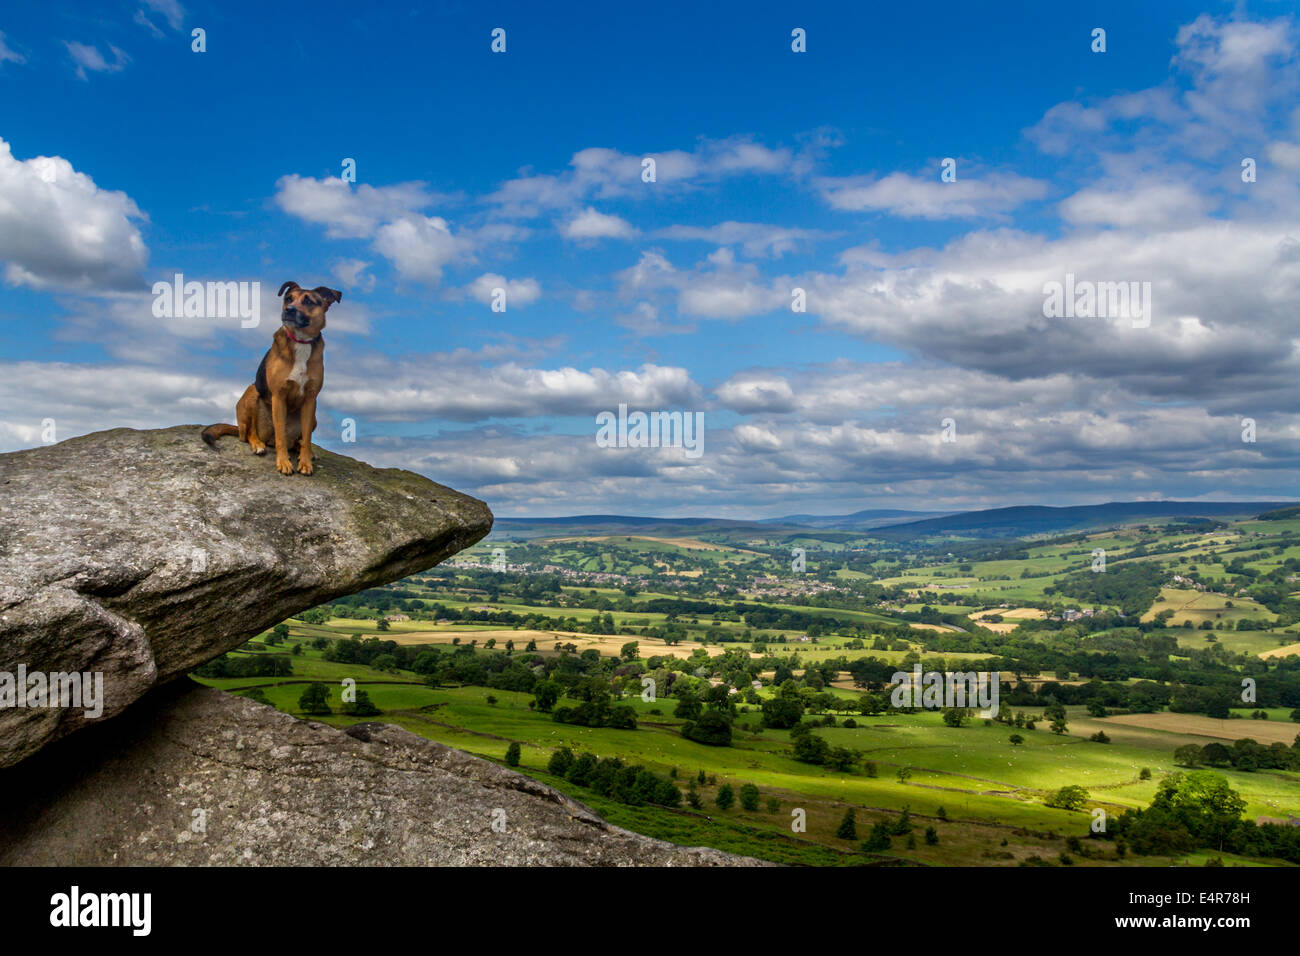 Dog enoying the sunshine perched on a ledge in Yorkshire Dales - Stock Image